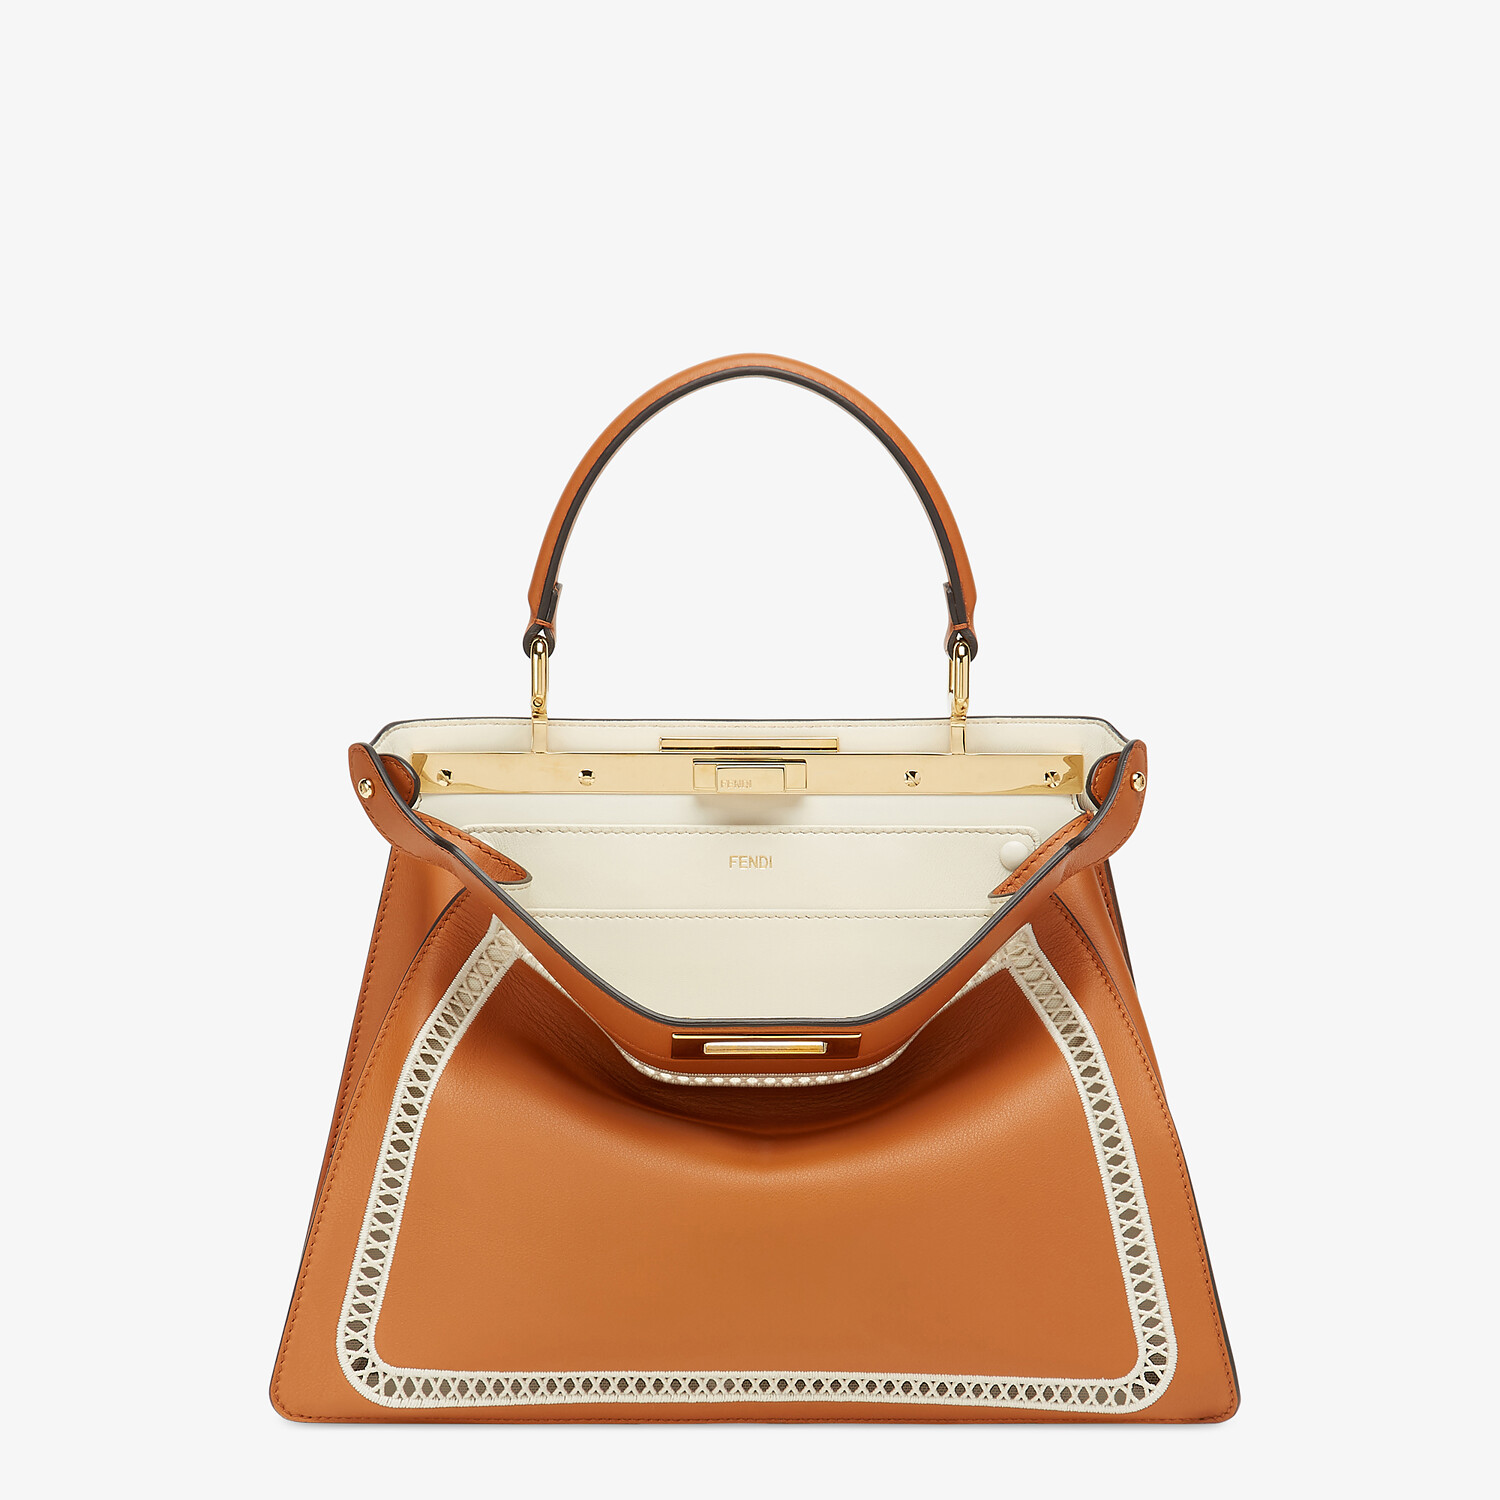 FENDI PEEKABOO ISEEU MEDIUM - Embroidered brown leather bag - view 1 detail